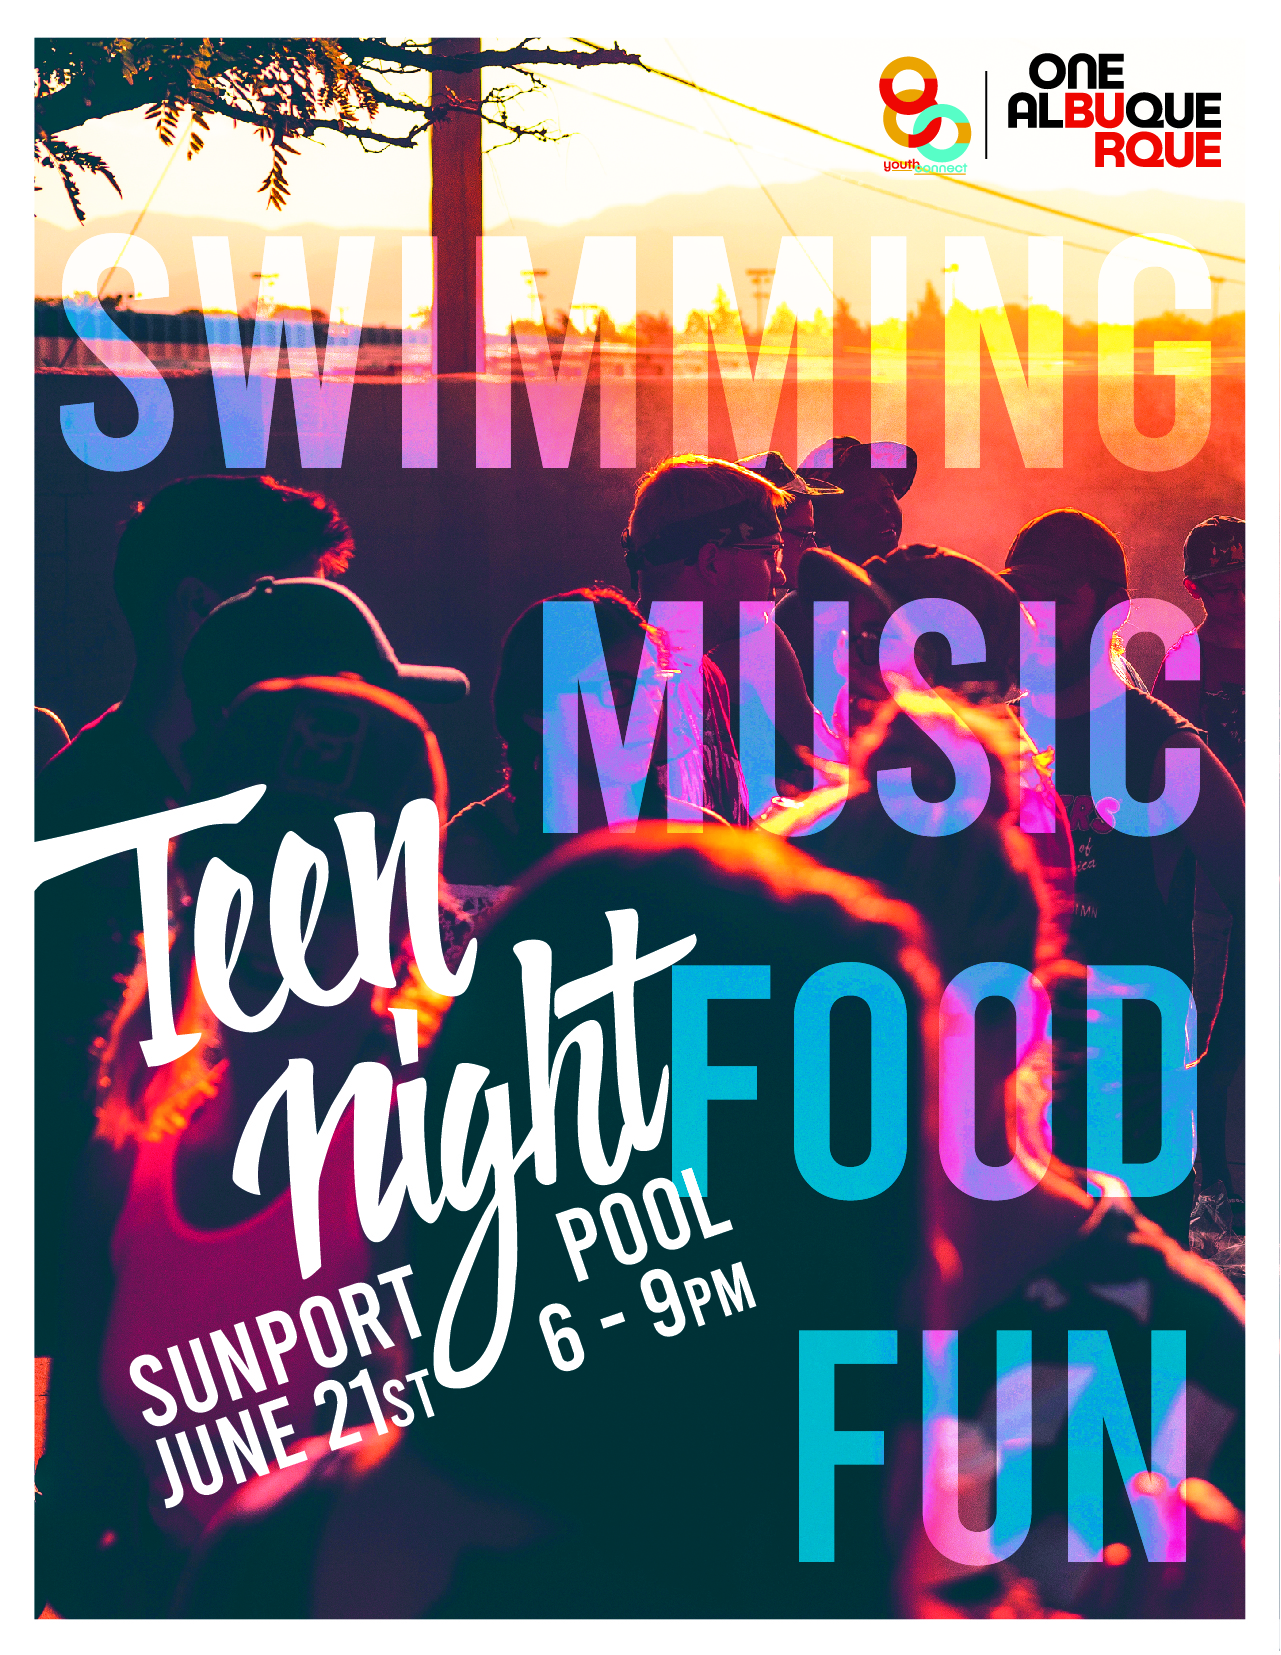 The Teen Night 2019 Pool Party Flier